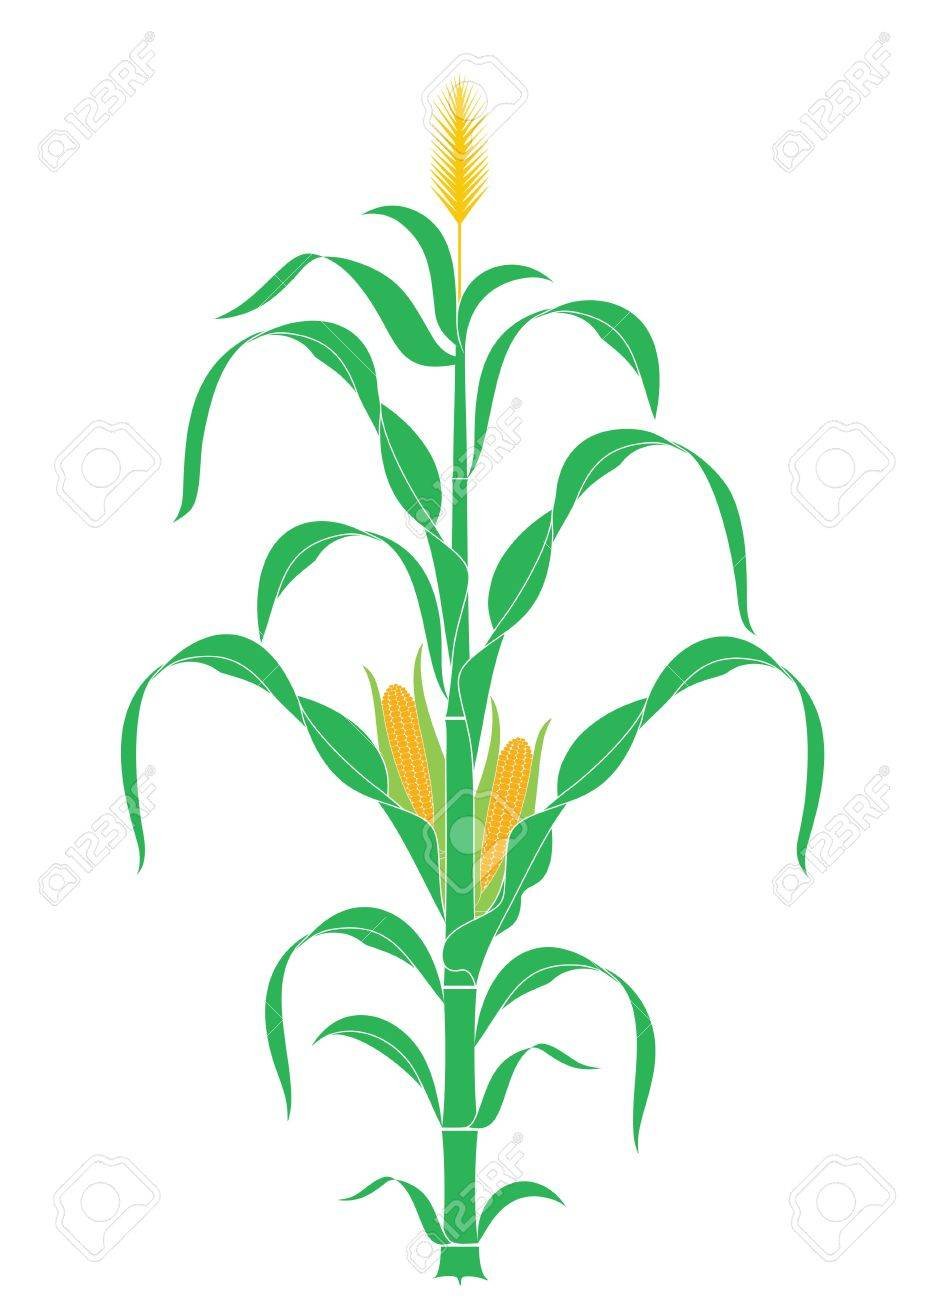 corn stalk plant vector royalty free cliparts vectors and stock rh 123rf com corn stalk bundle clipart